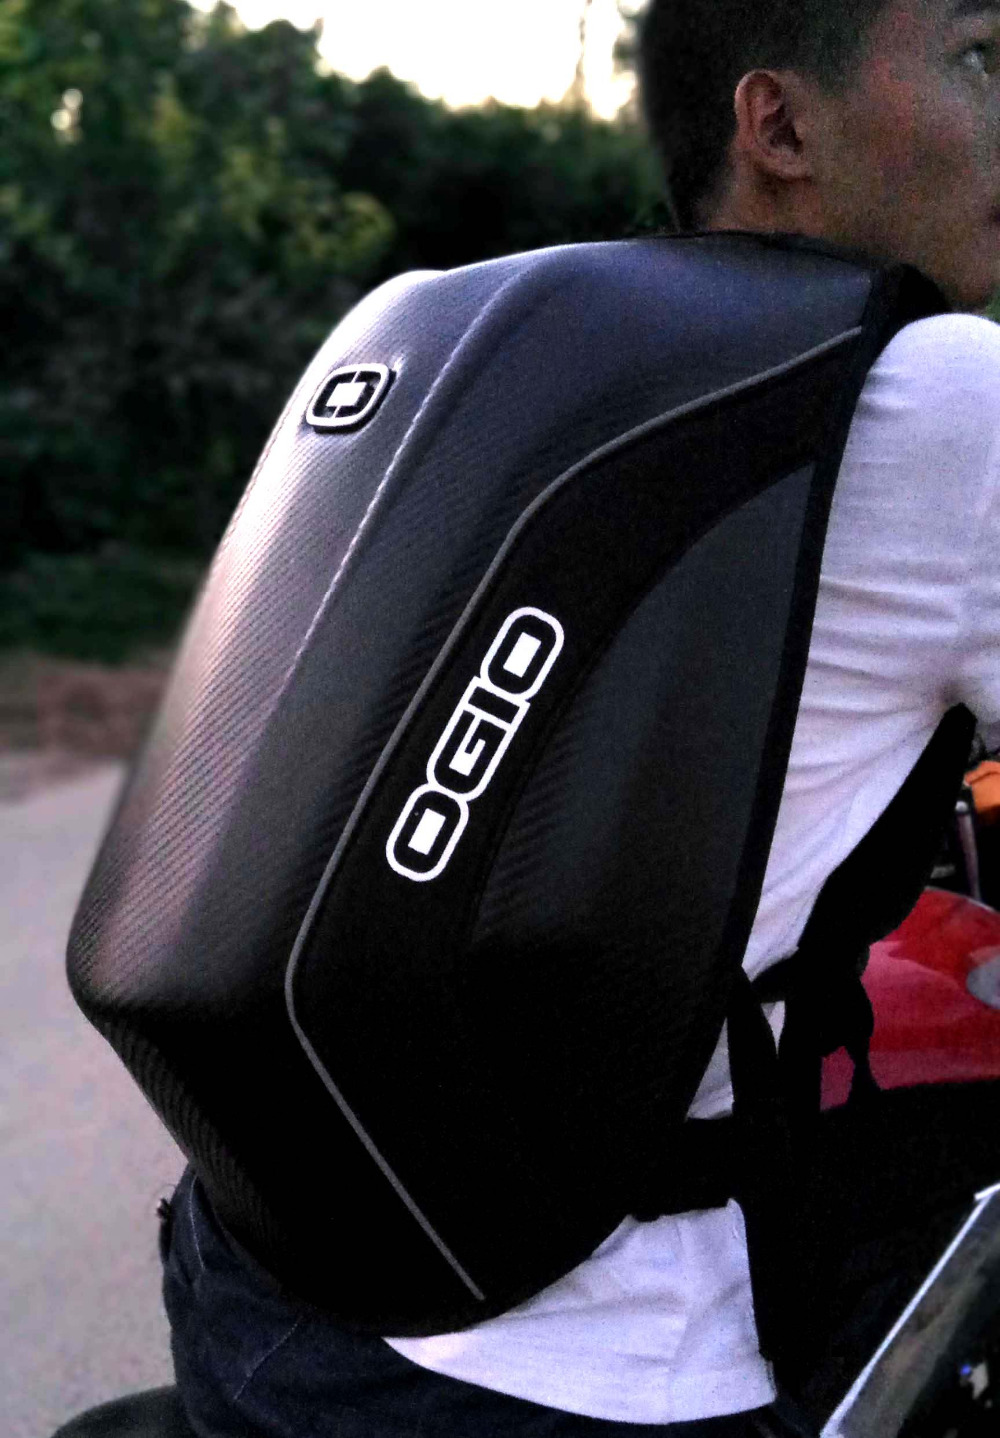 2016 OGIO Mach 5 carbon fiber mach 3 fashion backpack Motorcycle ...